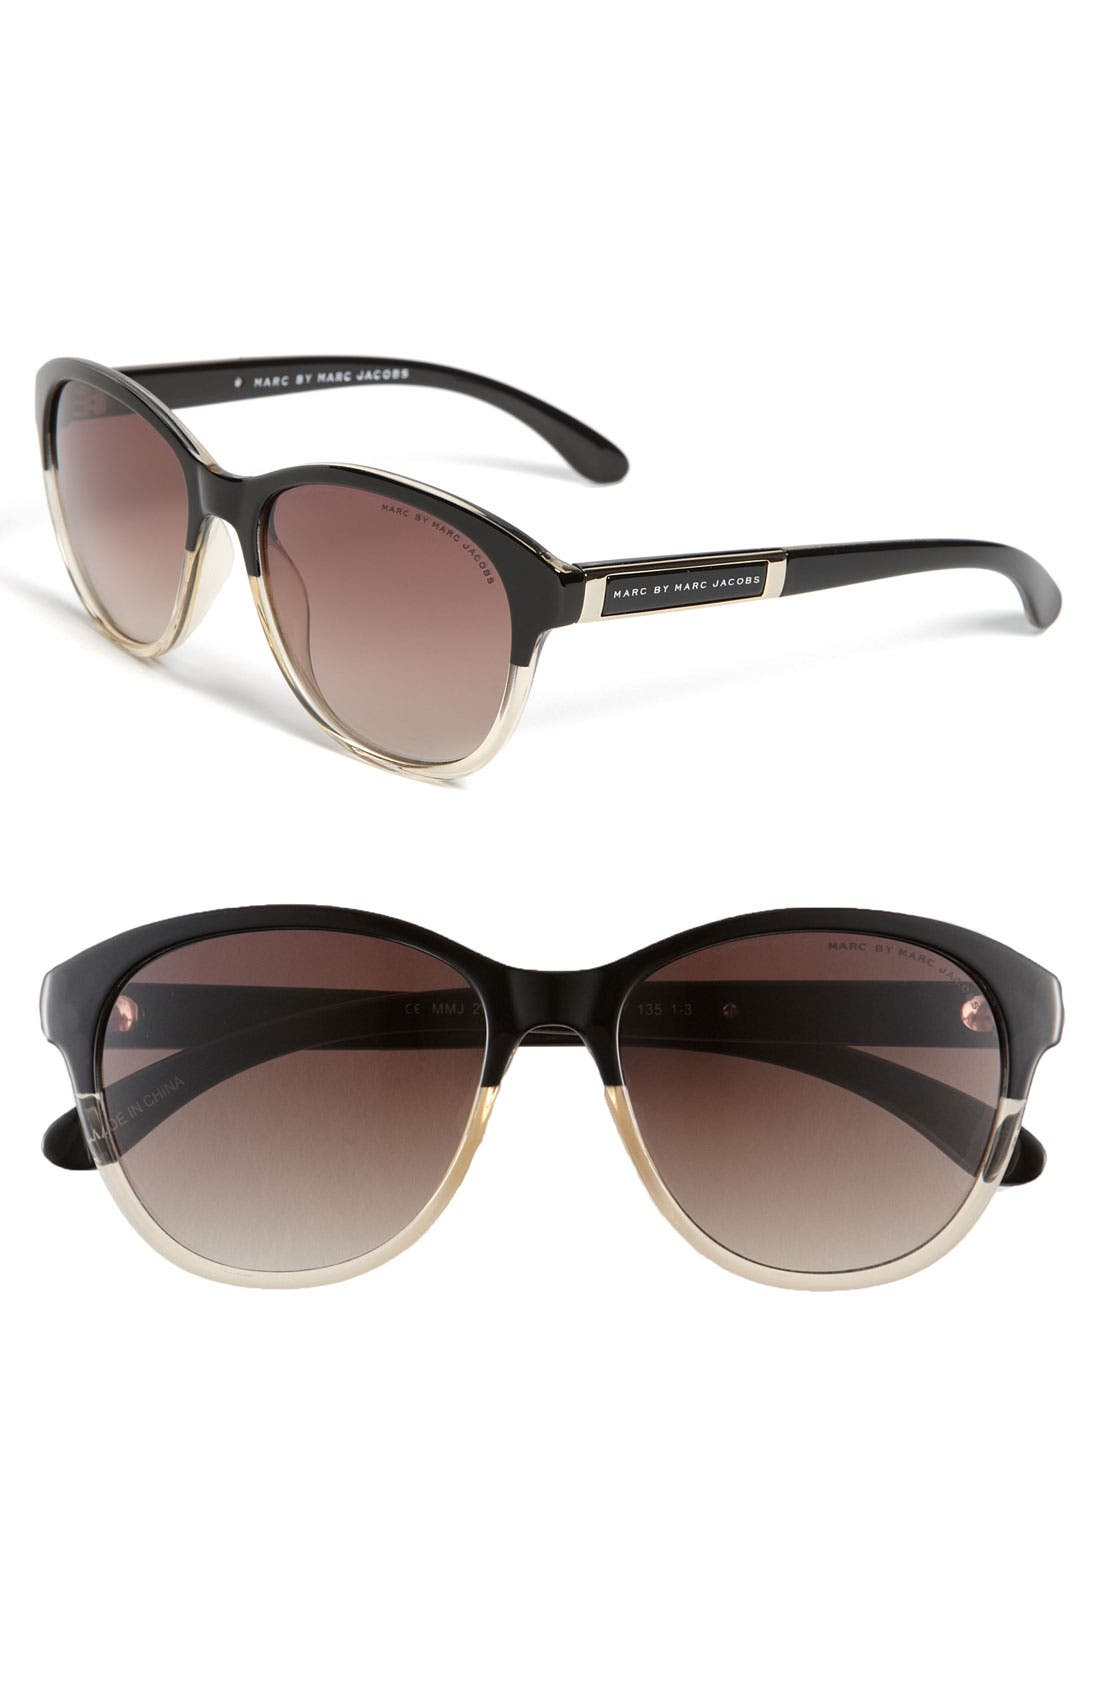 Main Image - MARC BY MARC JACOBS Retro Plastic Sunglasses